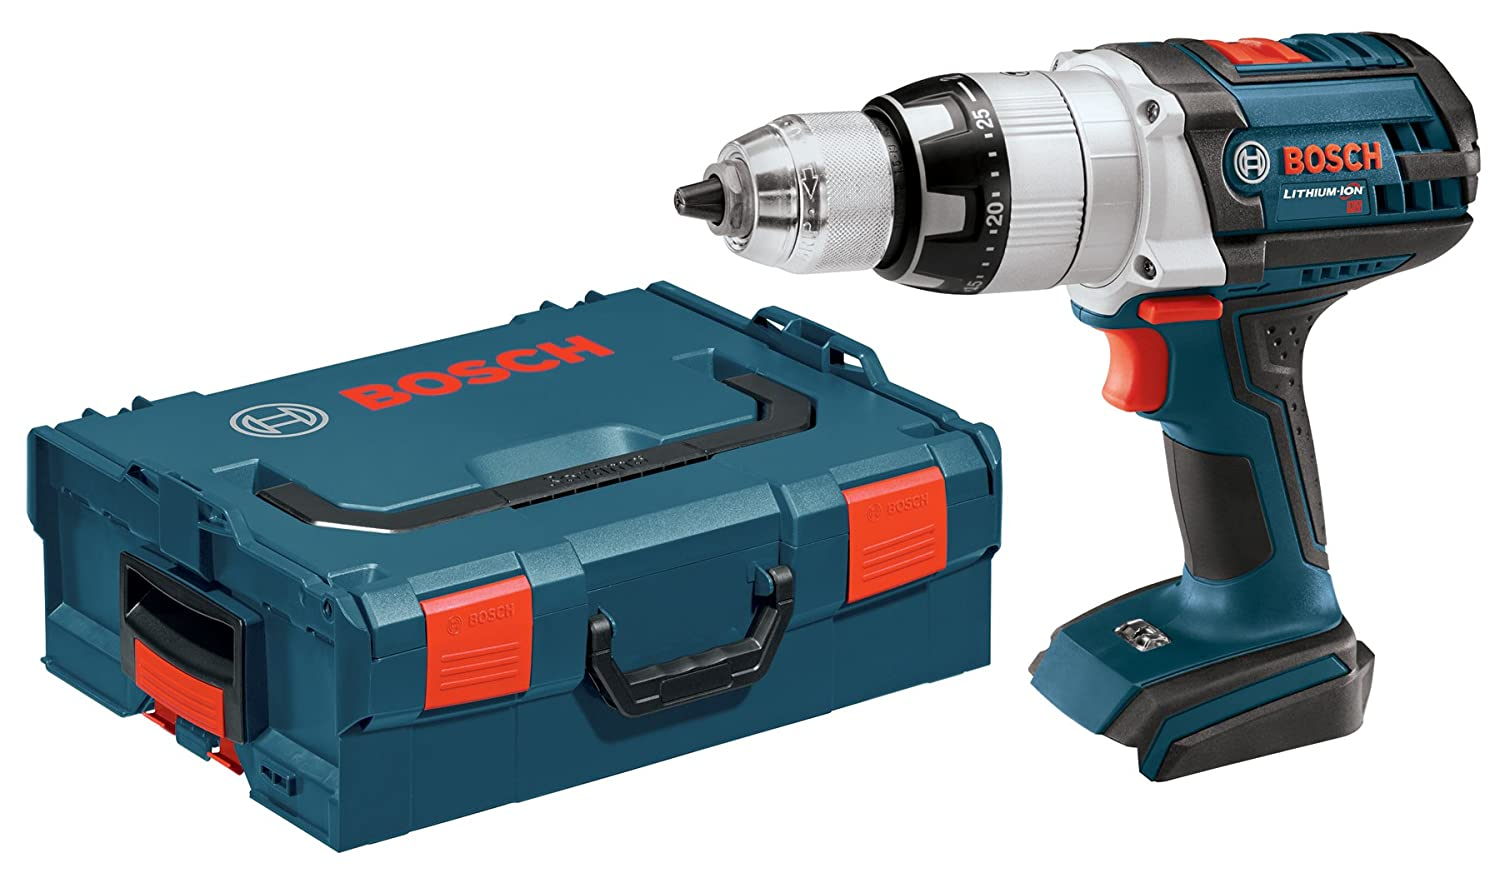 Bosch Bare-Tool HDH181BL 18-Volt Lithium-Ion 1 2-Inch Brute Tough Hammer Drill Driver with L-BOXX-2 and Exact-Fit Tool Insert Tray